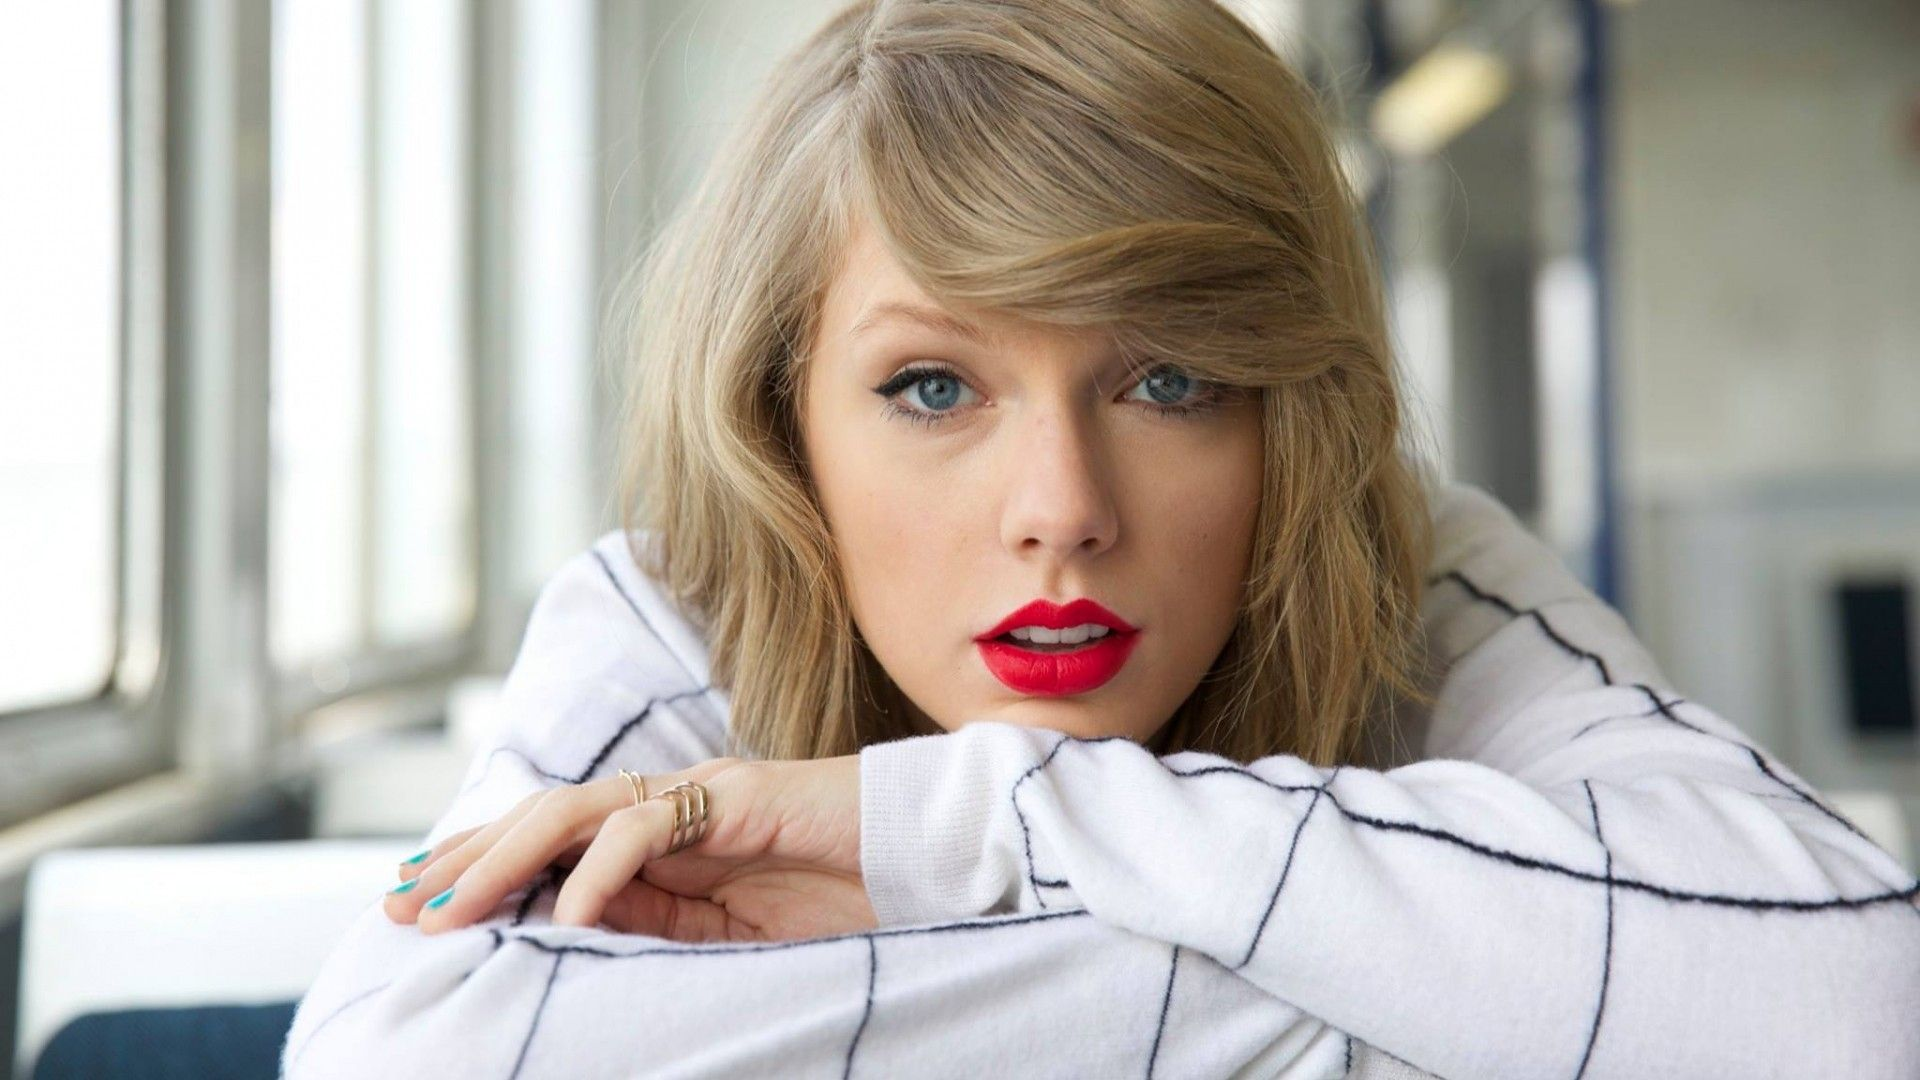 Taylor Swift Wallpaper 77 1920x1080 Pixel Wallpaperpass